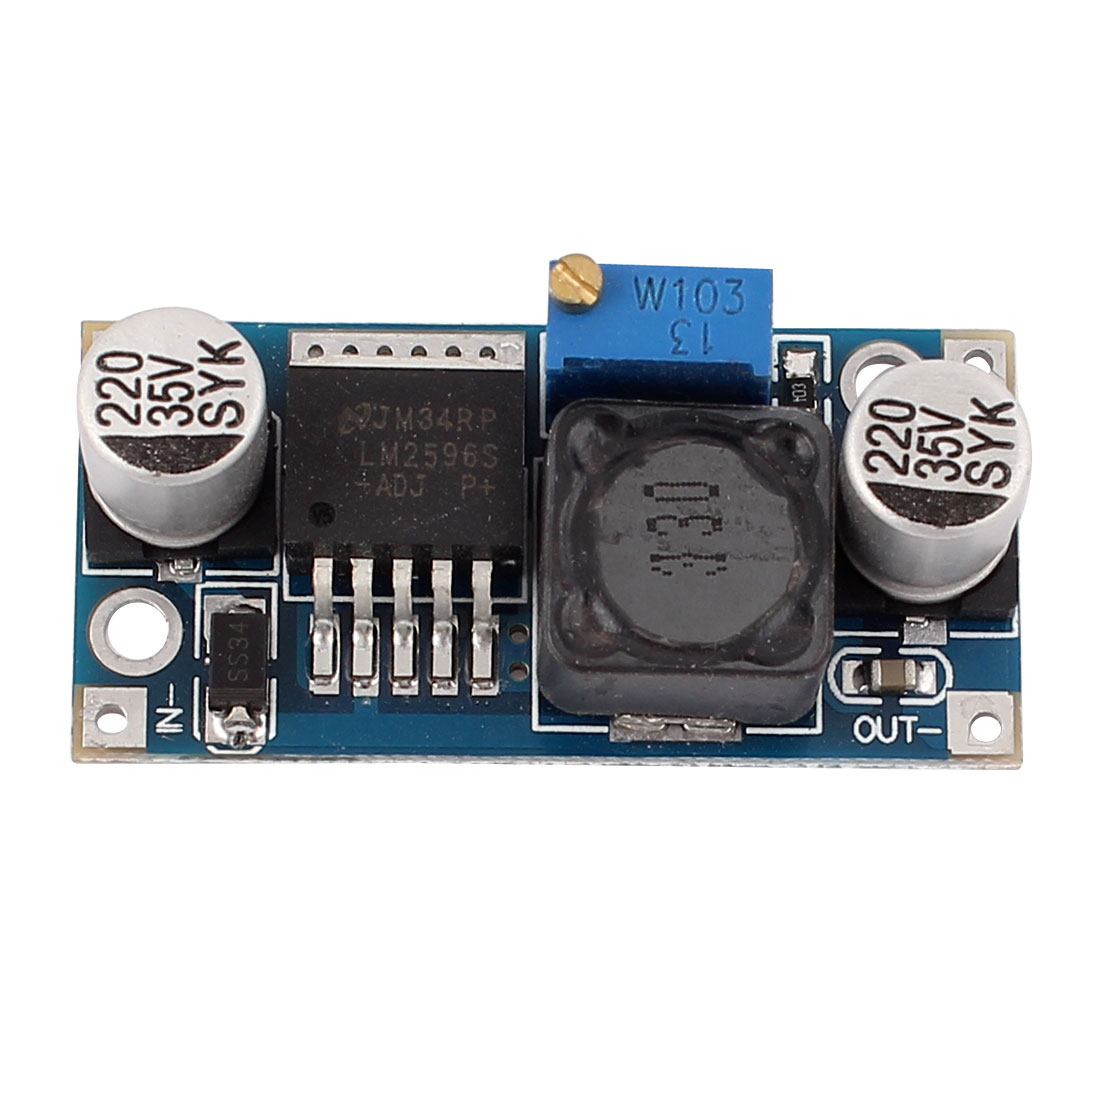 LM2596 Step Down Module DC-DC Buck Converter Power Supply 1.25V-35V Output